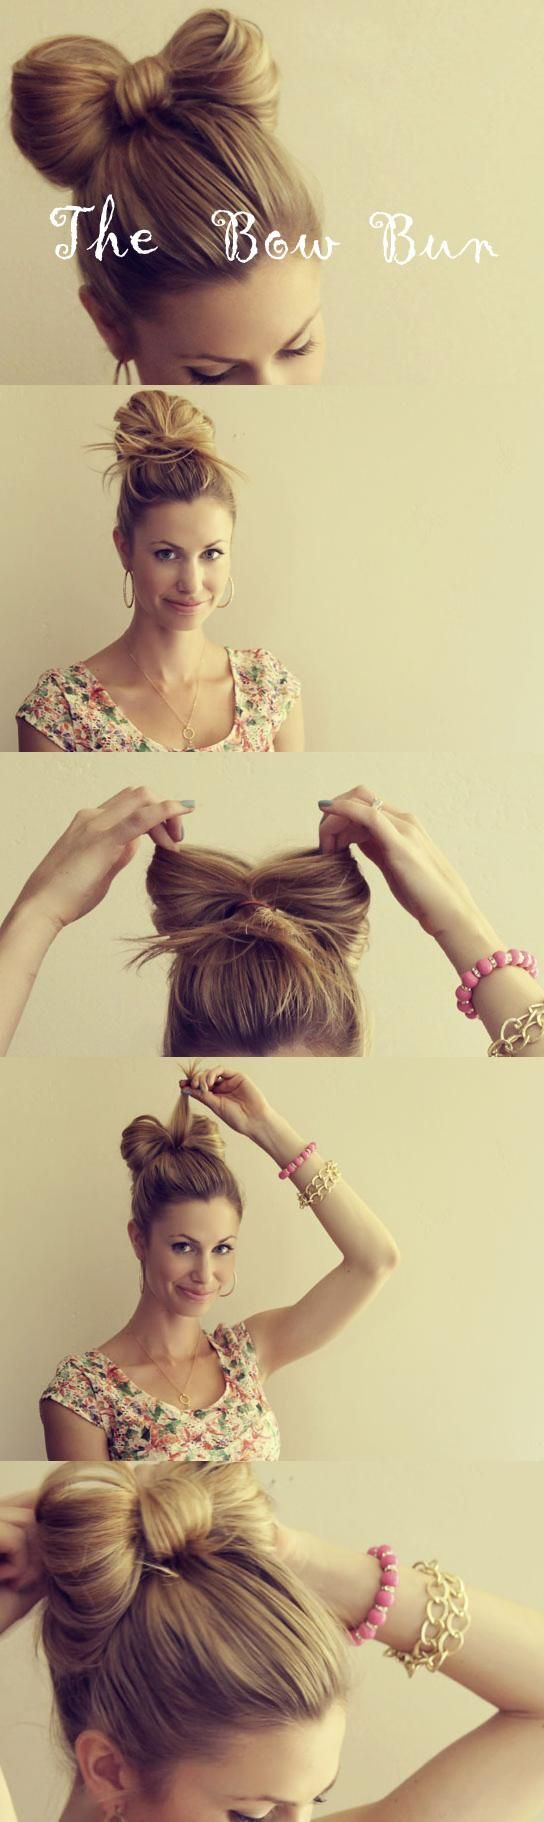 bow bun.: Hairbow, Hairstyles, Hair Styles, Hairdos, Bow Buns, Hair Tutorial, Hair Bows, Updo